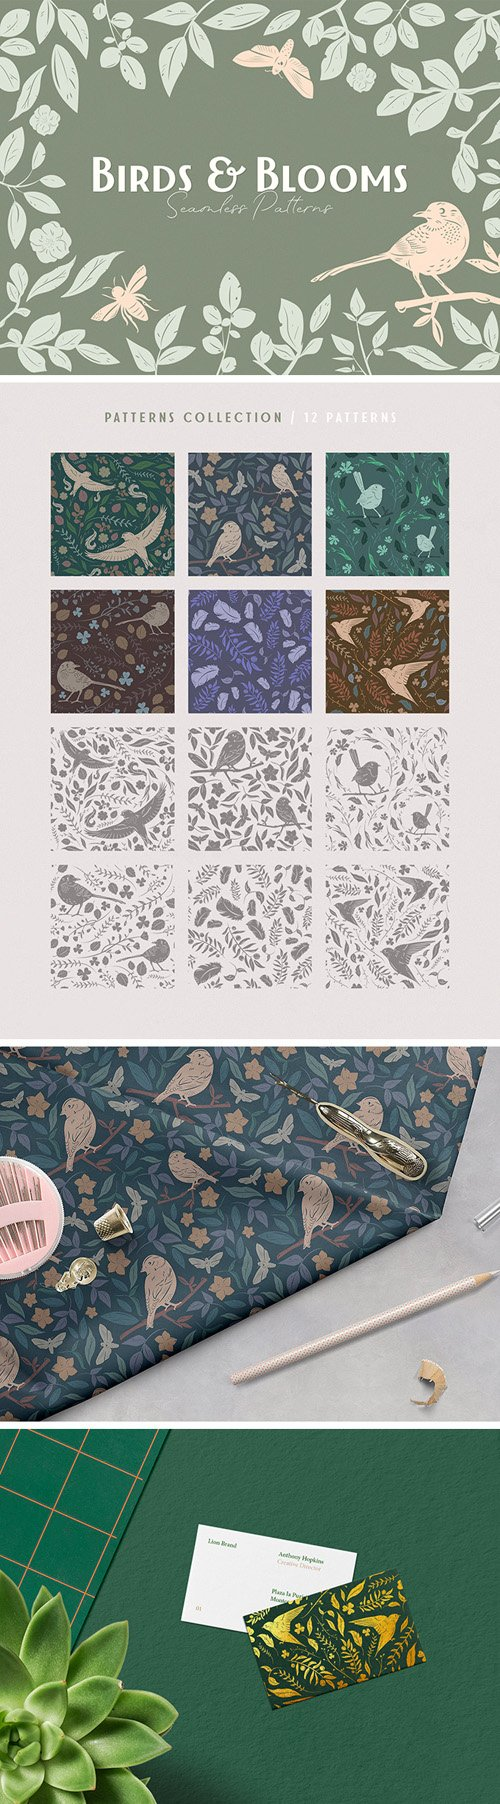 12 Birds & Blooms Seamless Patterns in Vector [Ai/EPS/PNG]